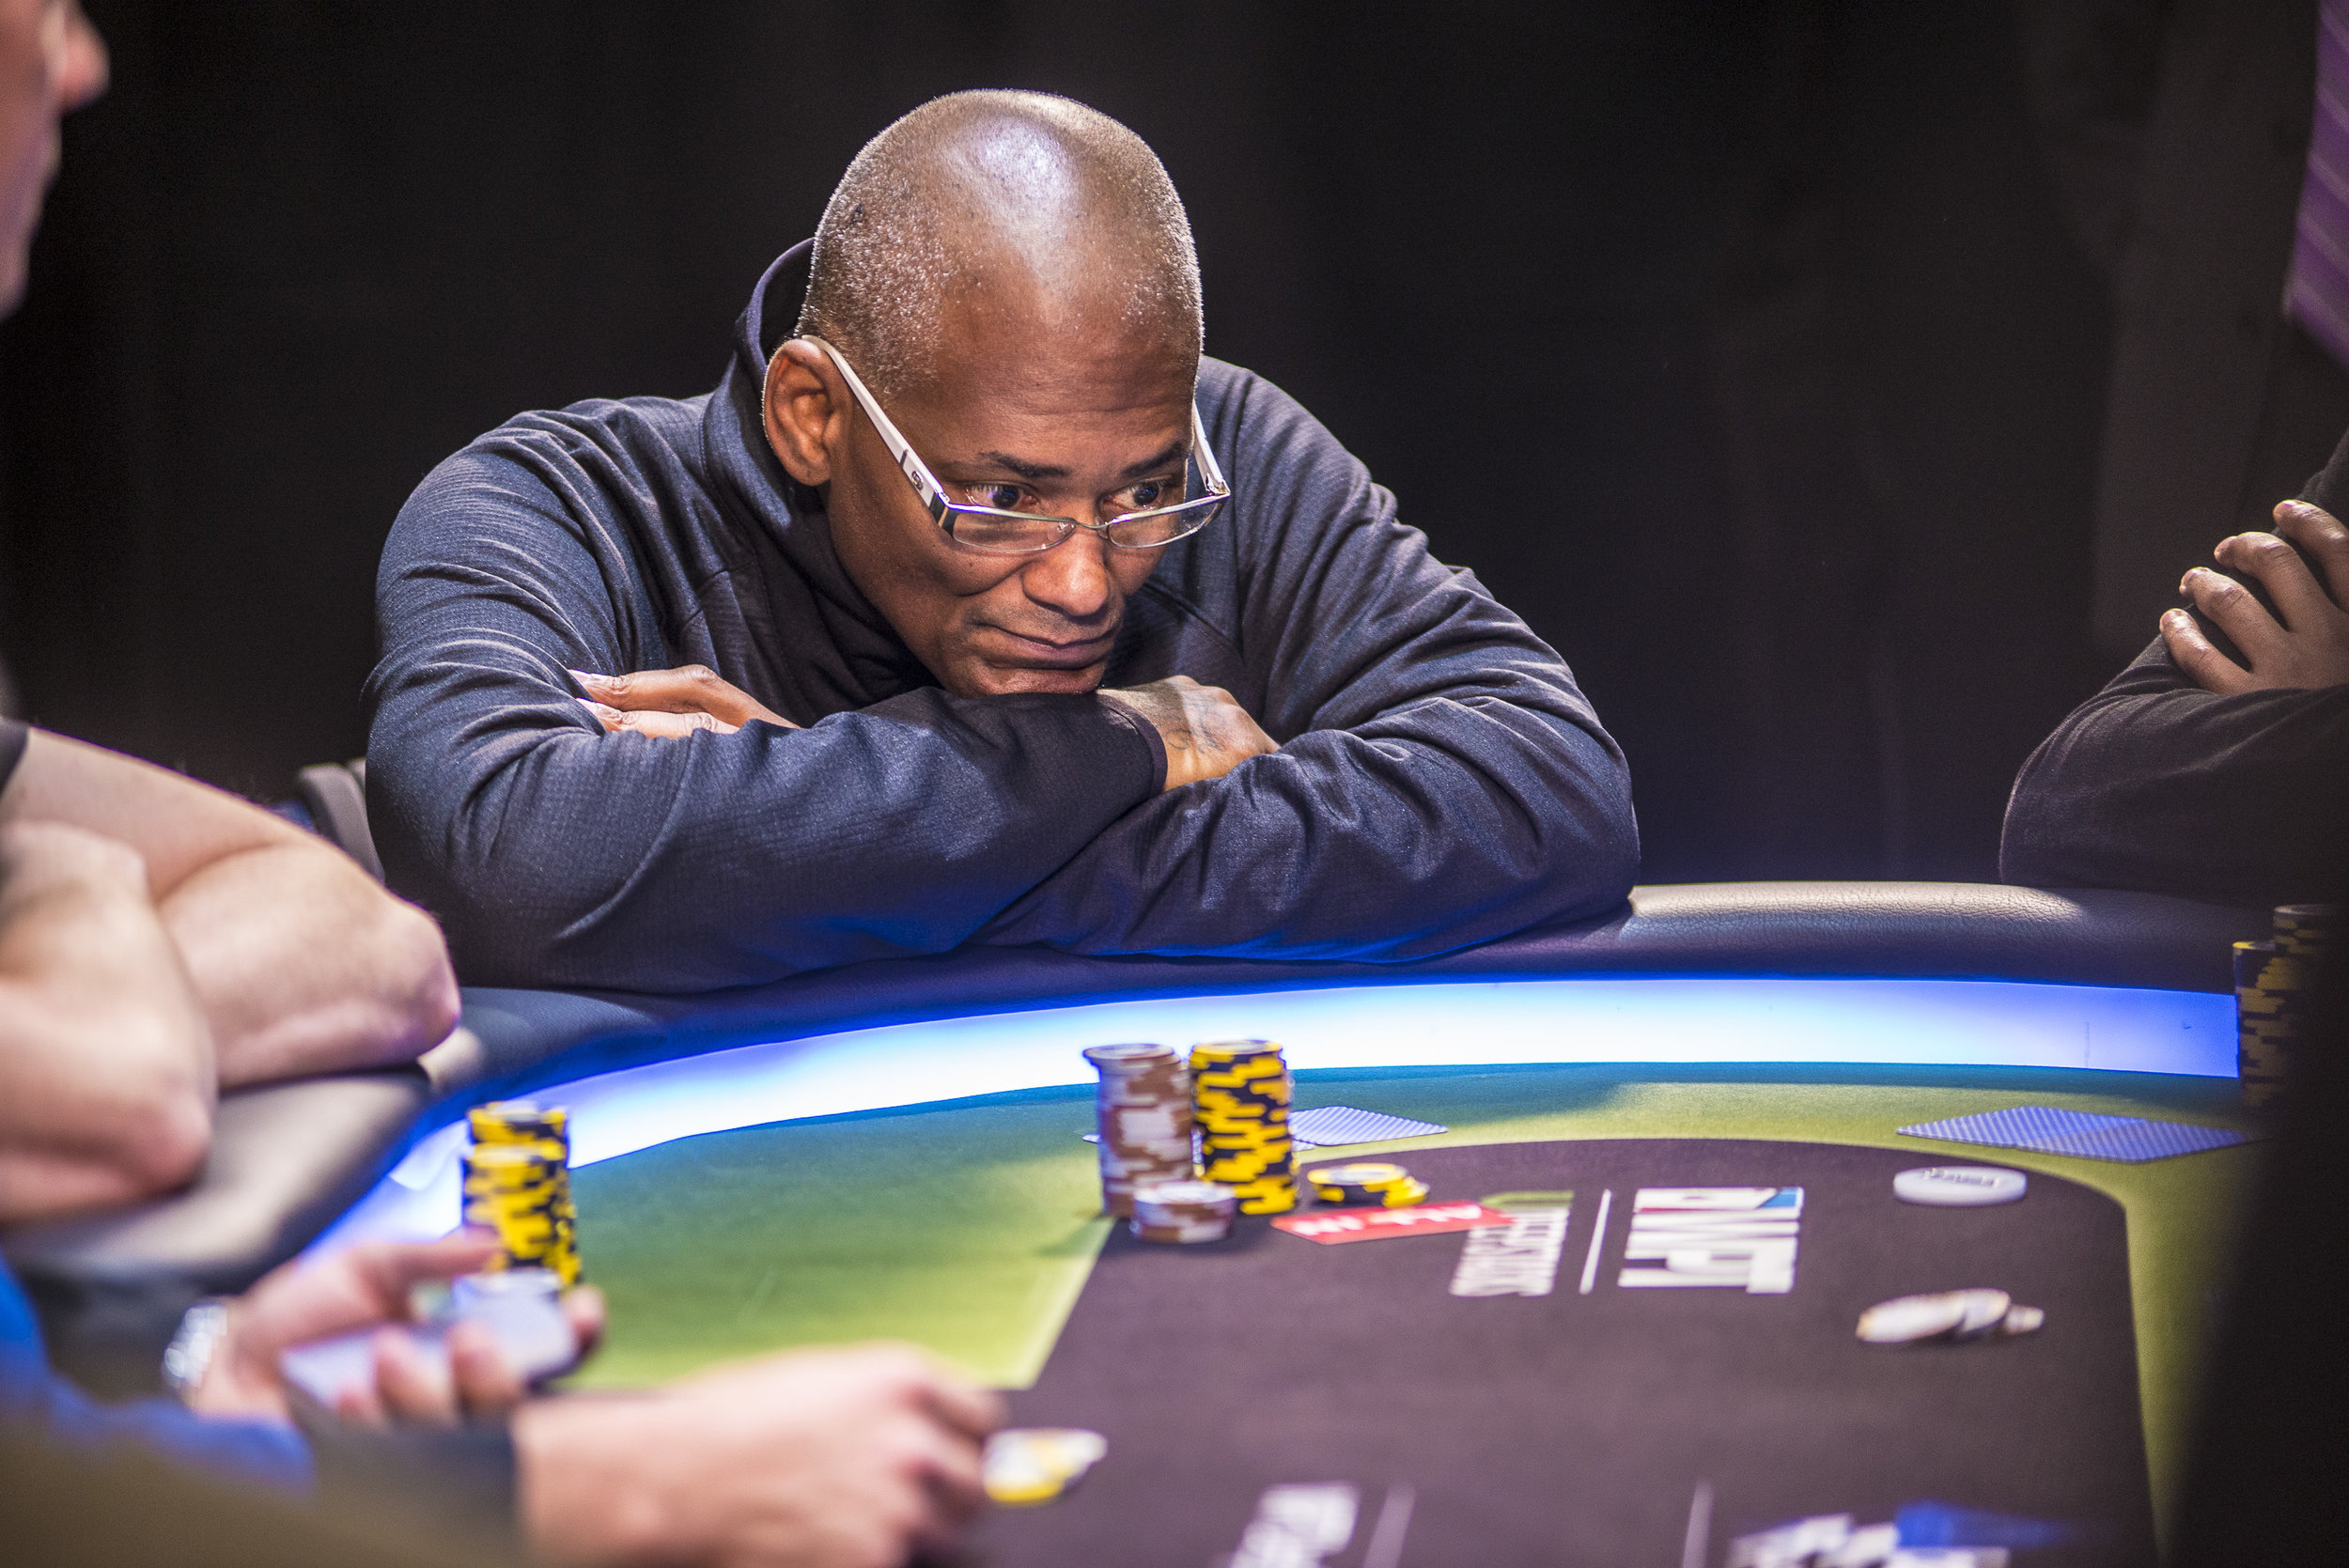 WPTDeepStacks_Richard McCrary_Amato_AA48637.jpg